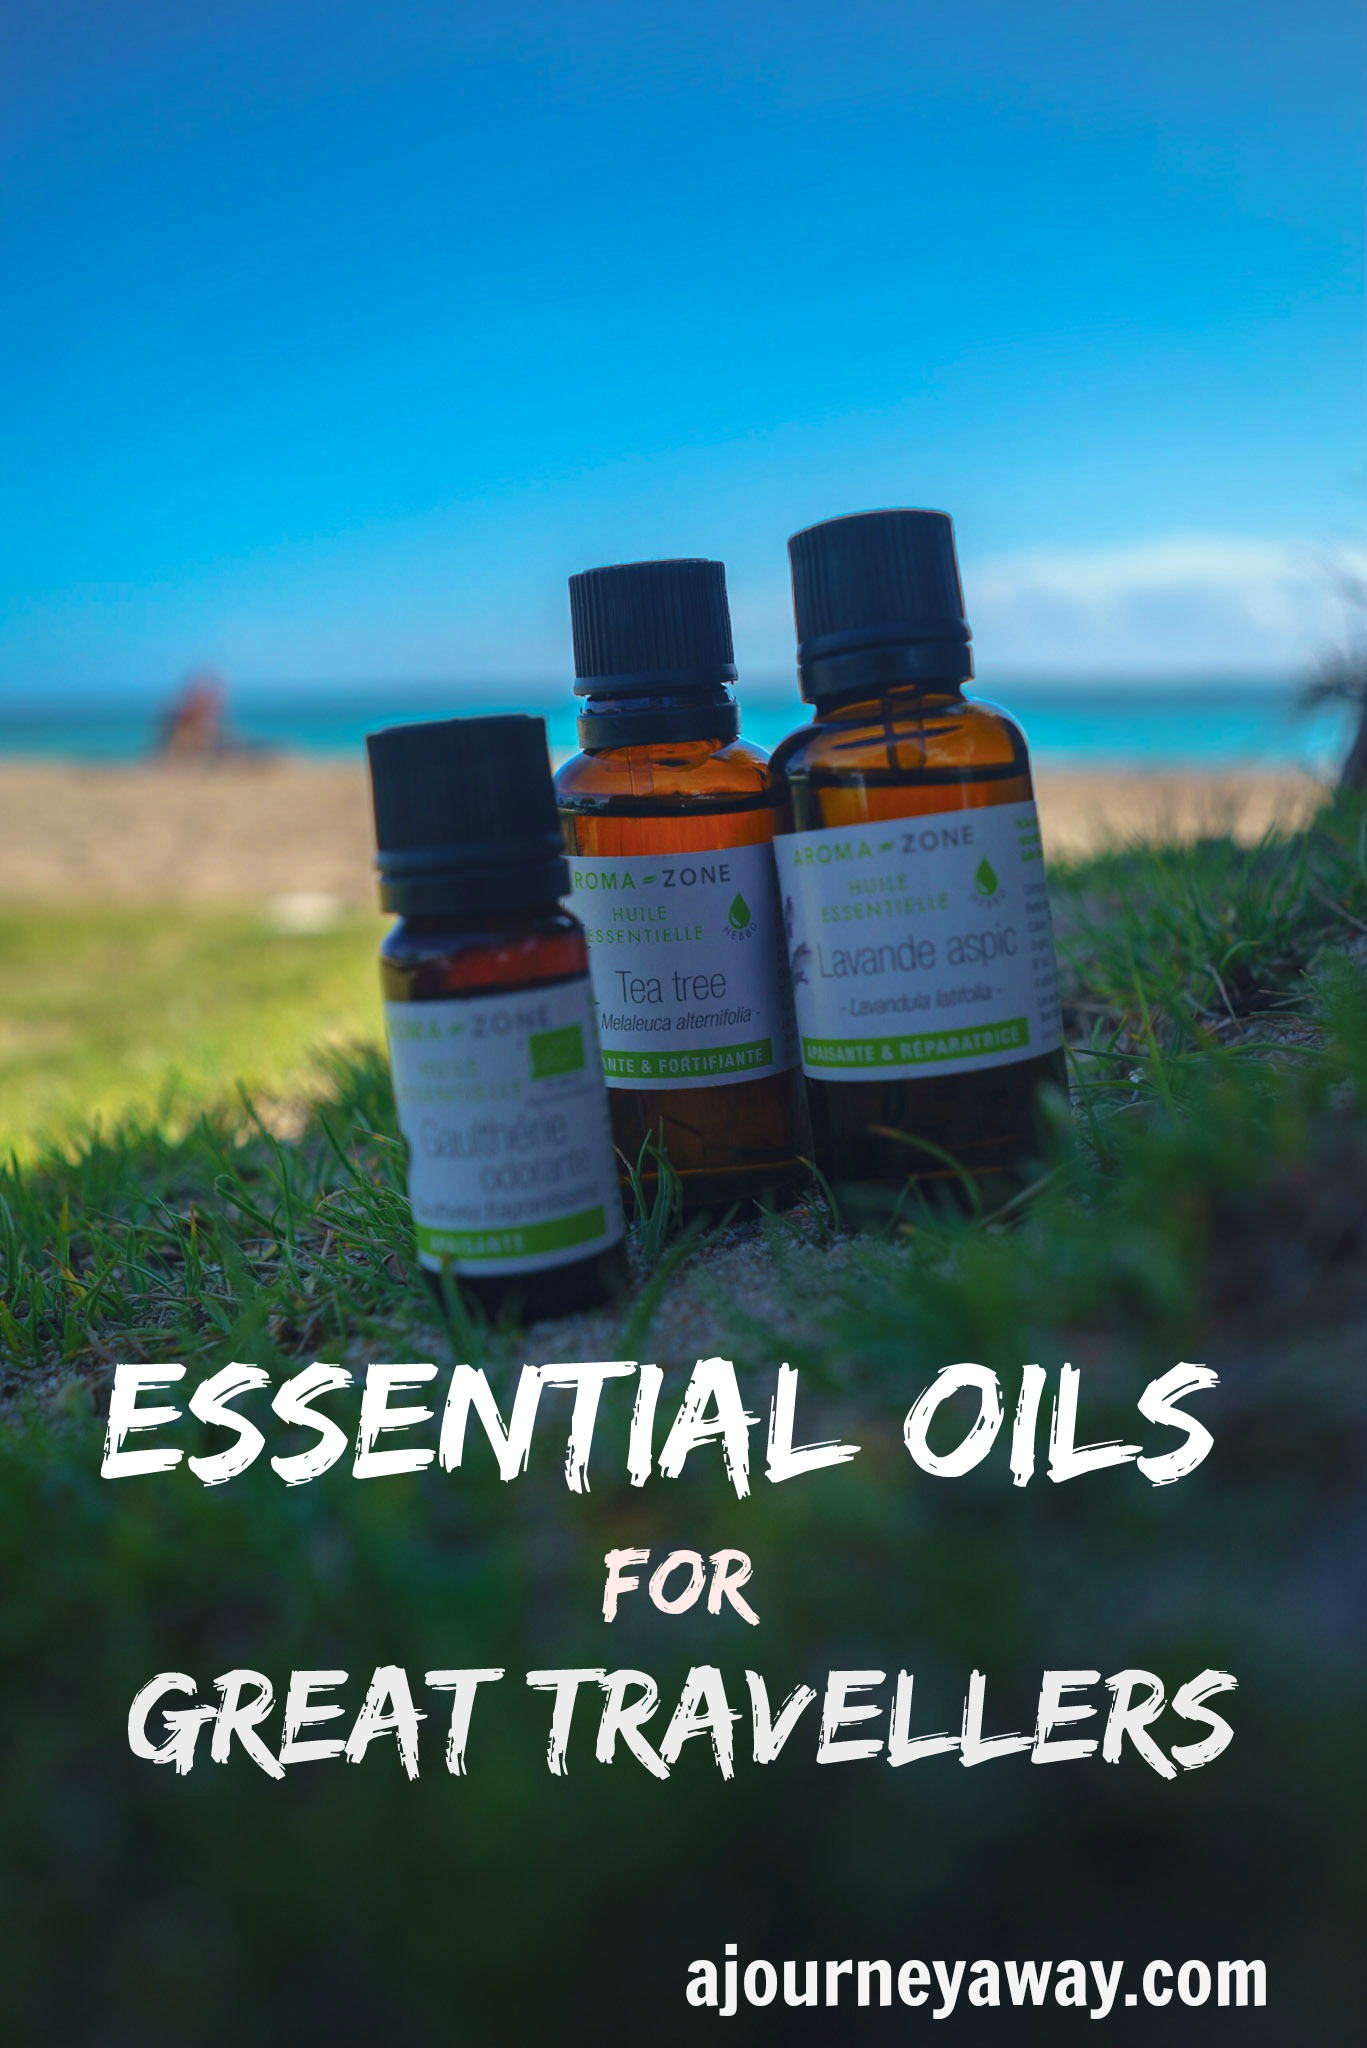 Essential Oils for Great travellers